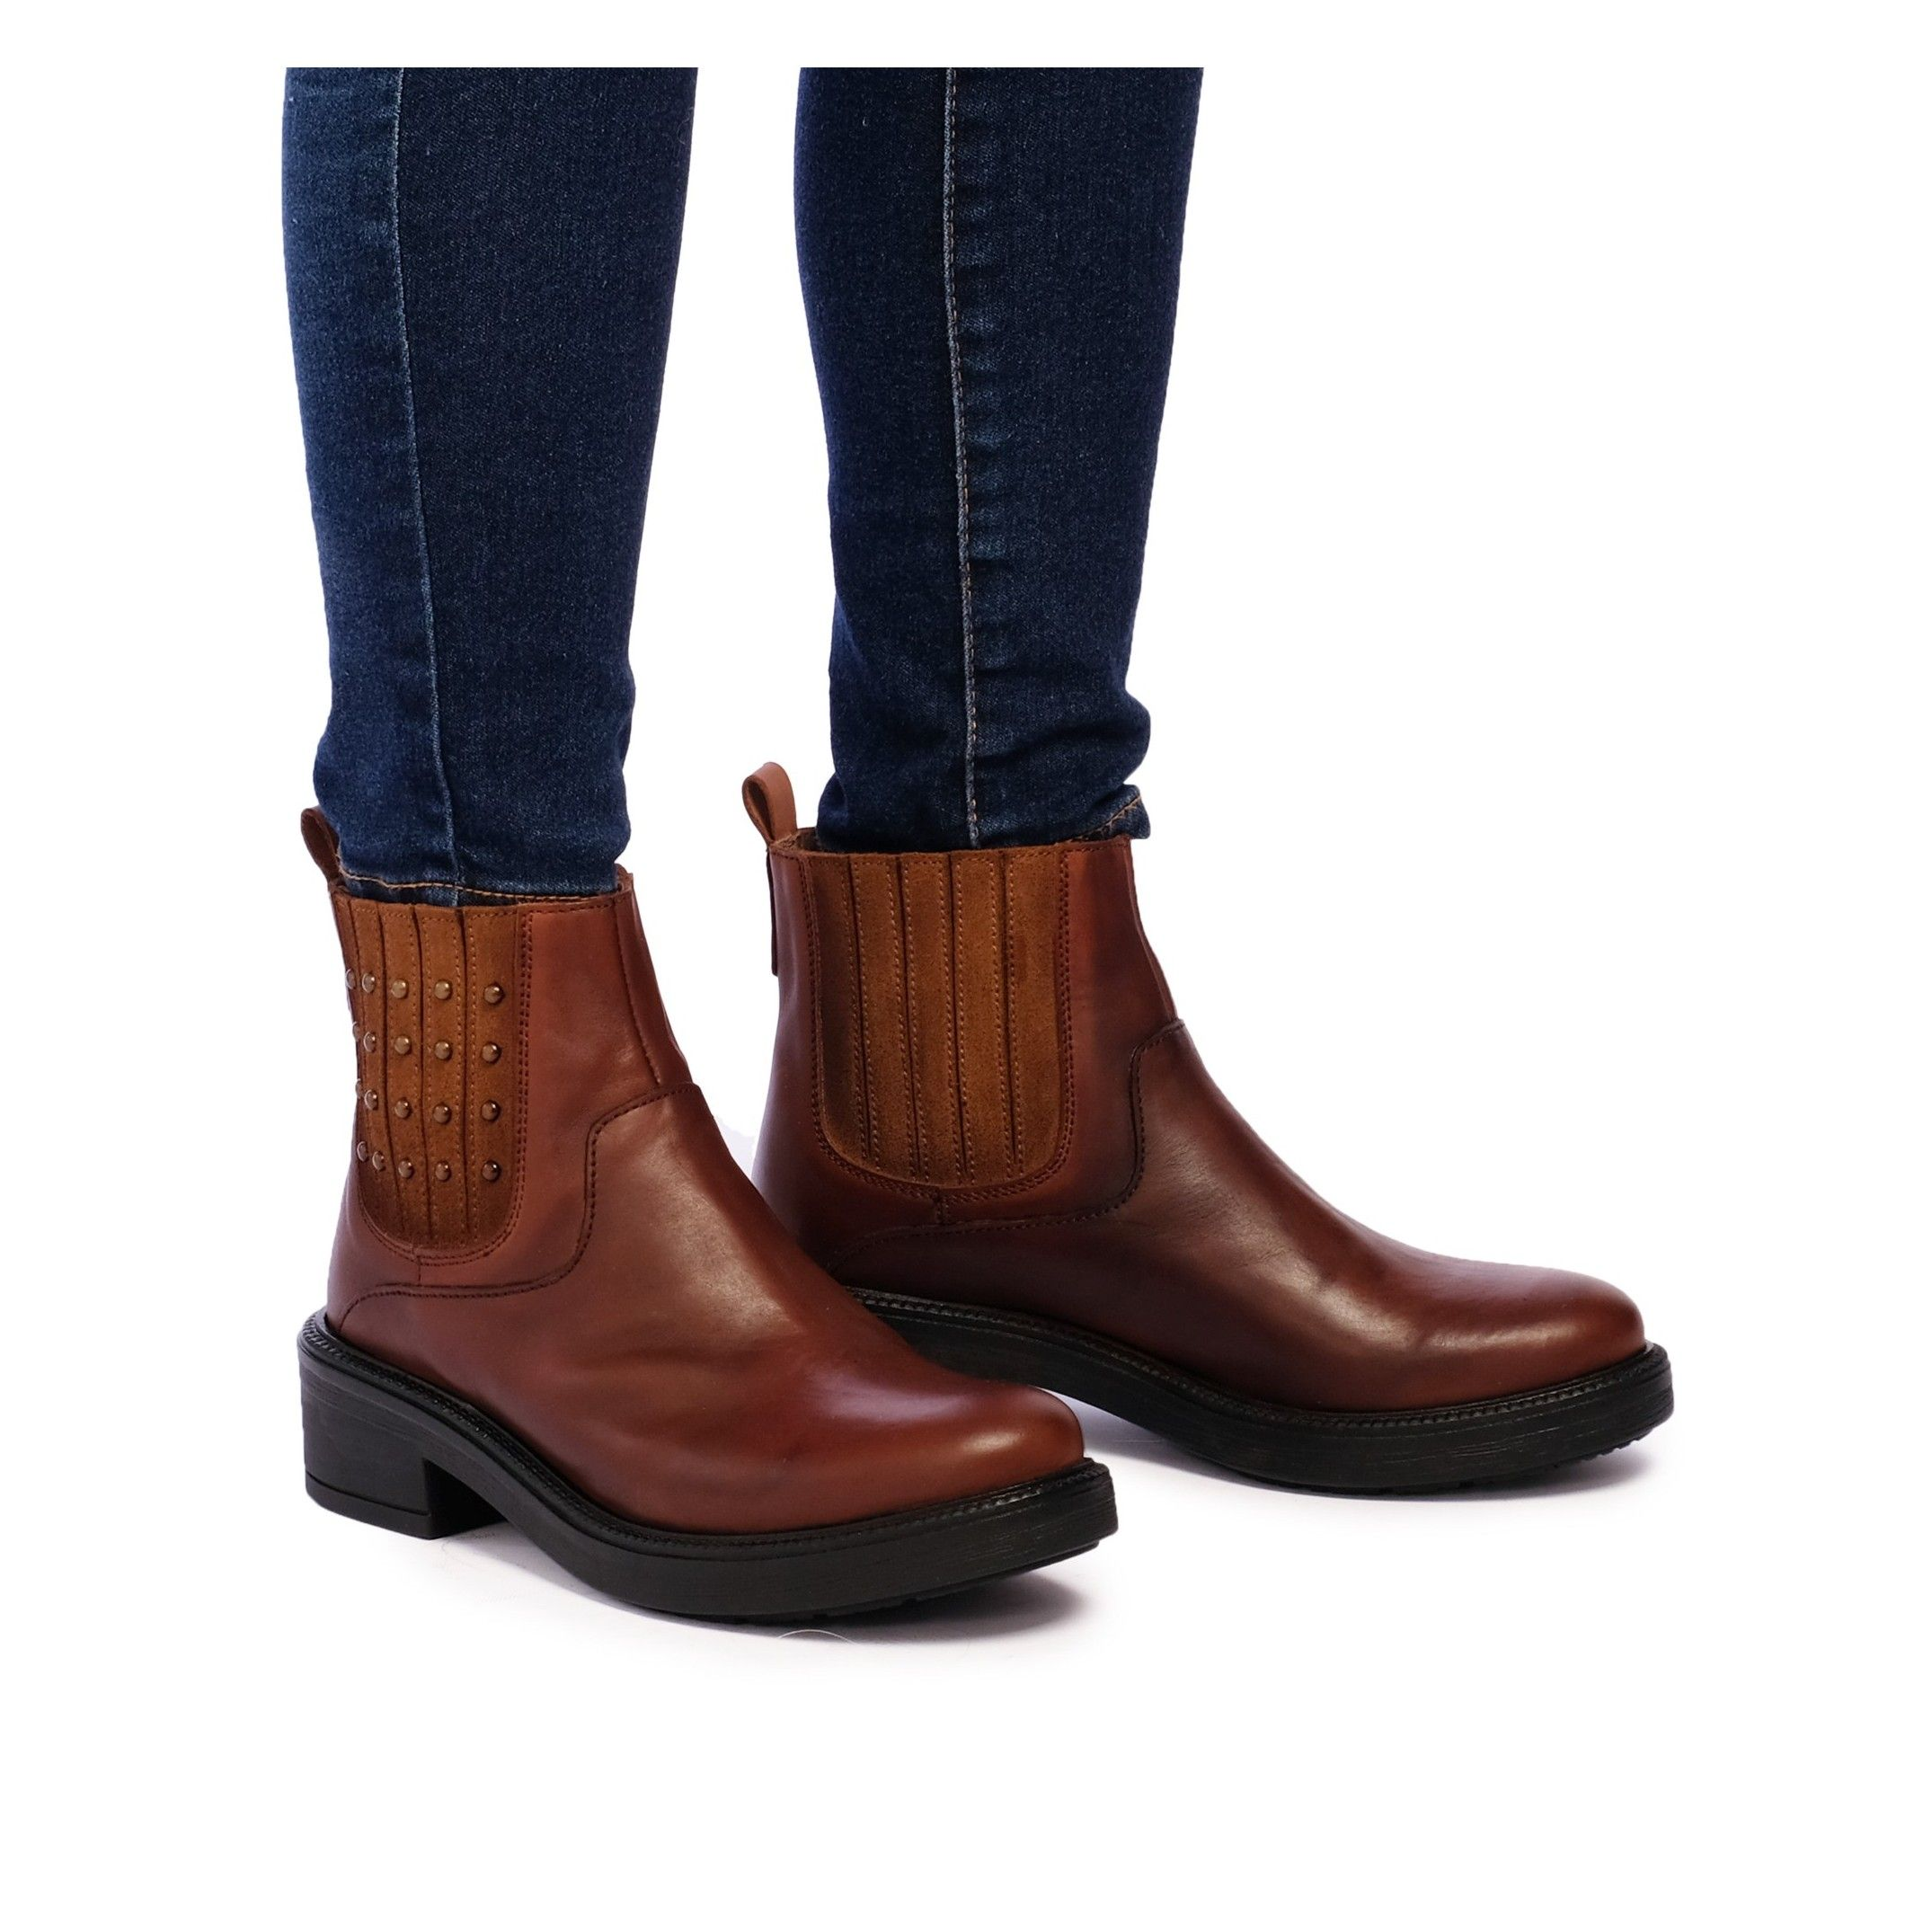 María Barceló Leather Ankle Chelsea Boots Brown Color Women